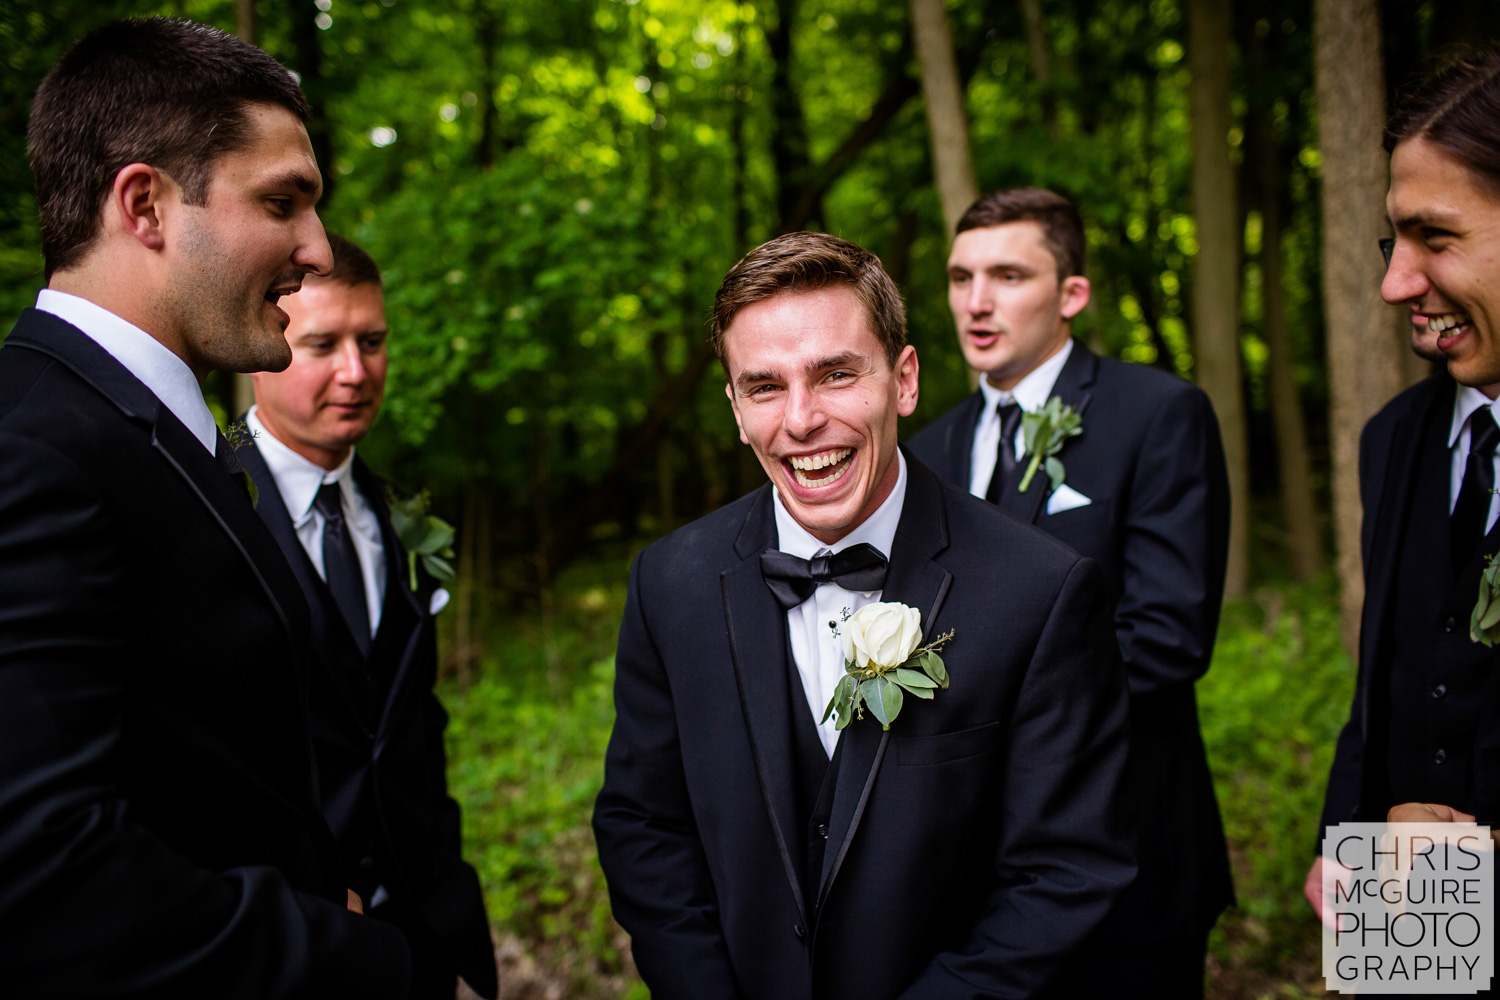 Peoria groom laughing